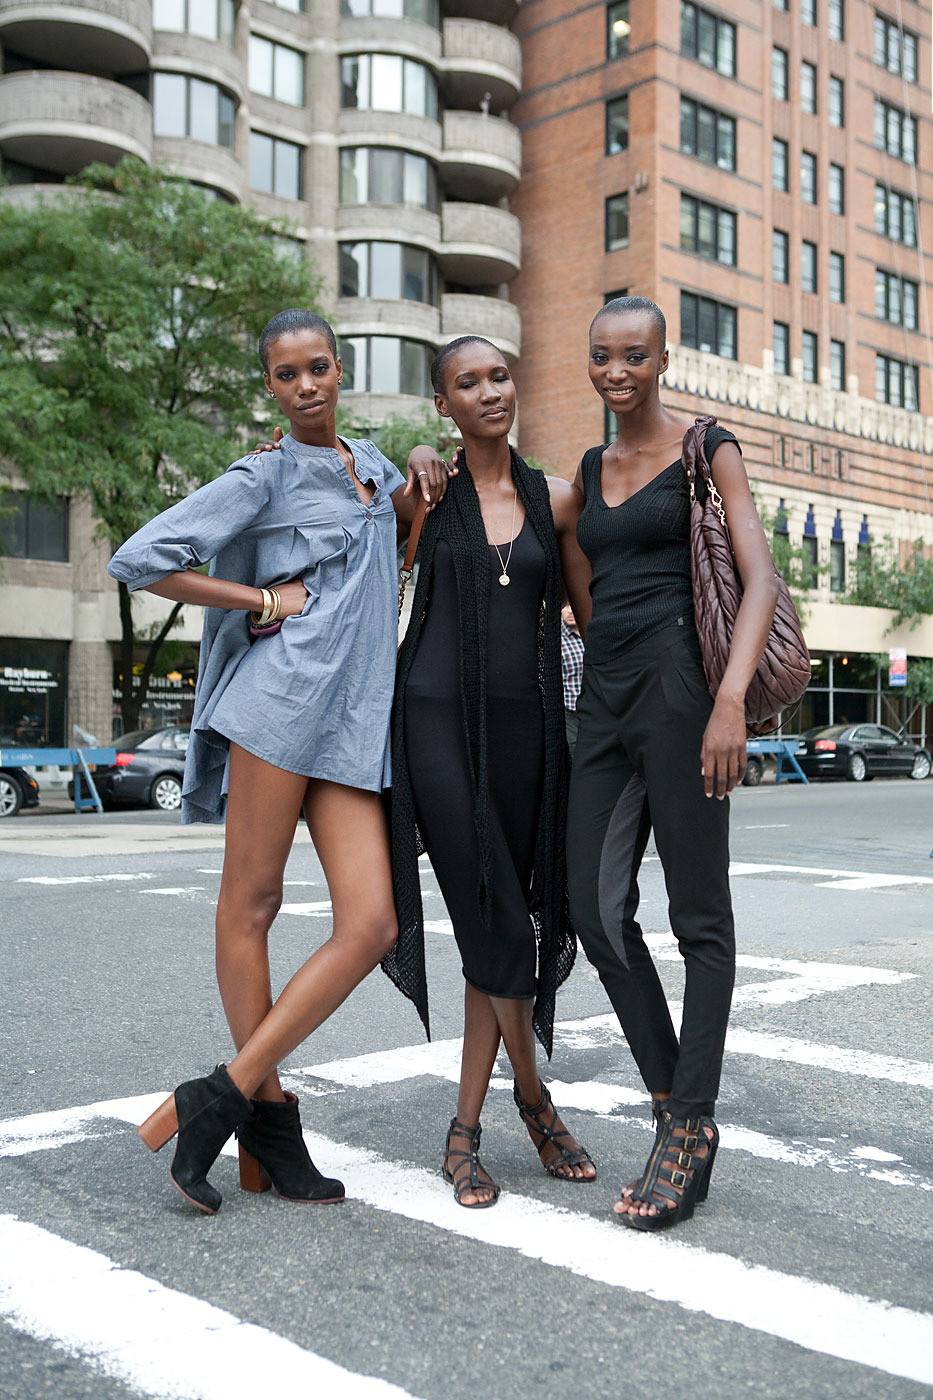 NYFW: 18 Model Street Style Snaps [Part 2]